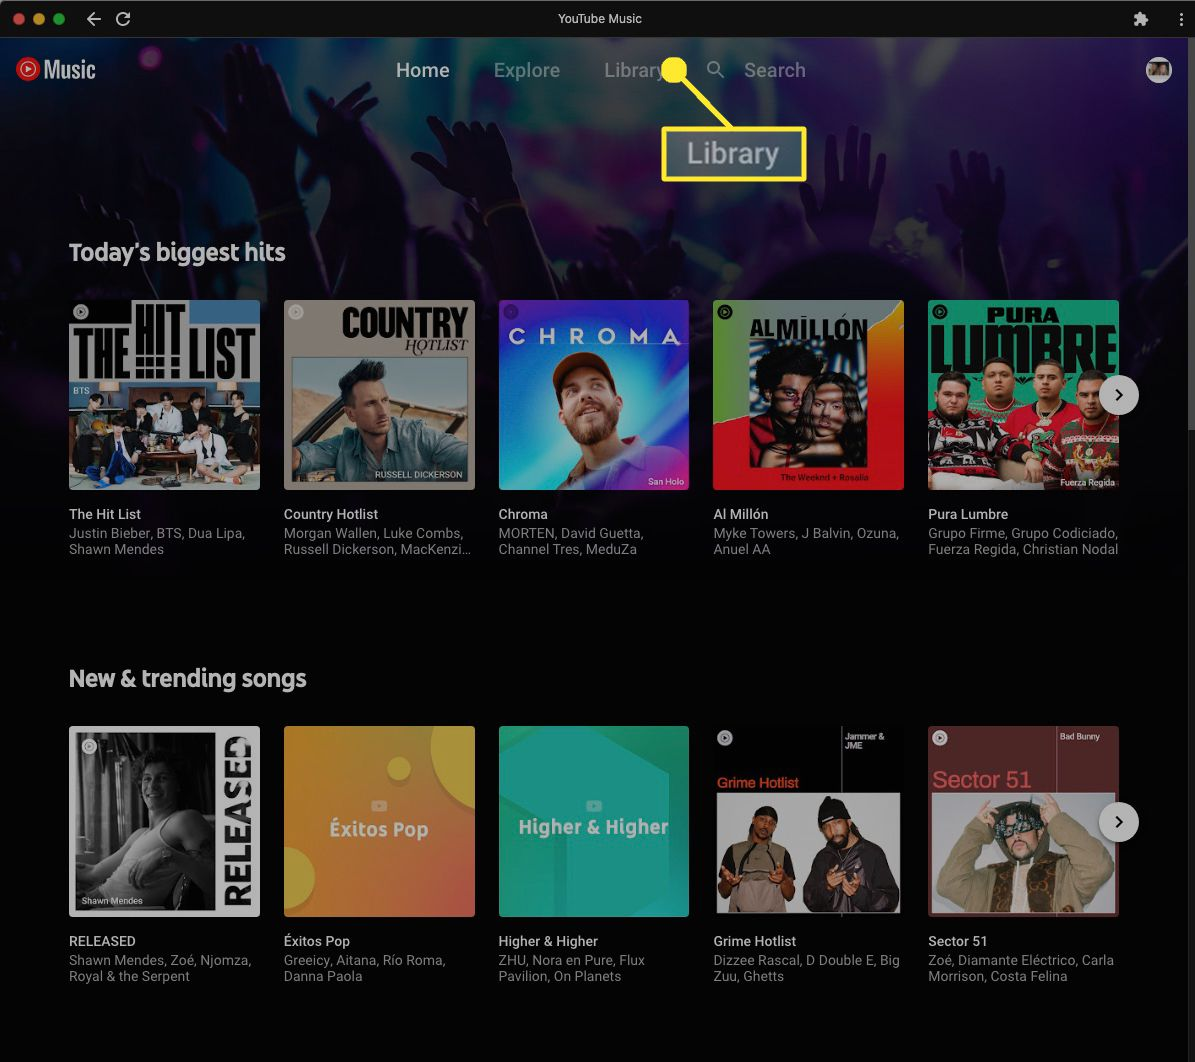 On your Chromebook, navigate to the YouTube Music app and select Library.